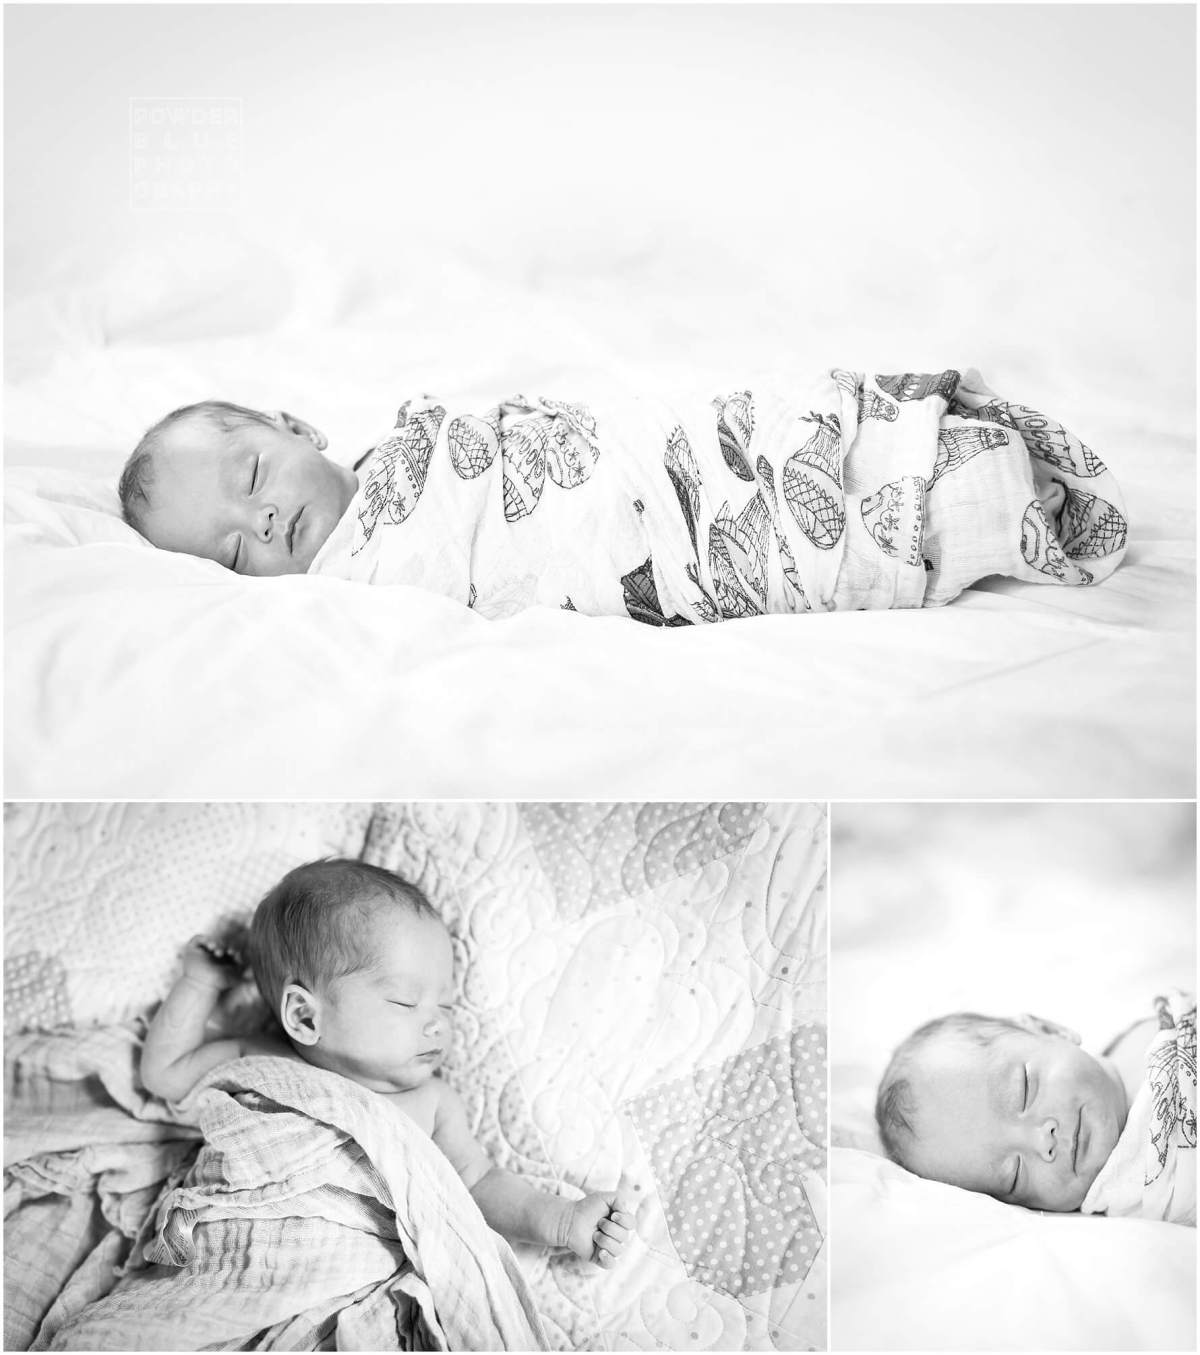 black and white baby portrait on a bed